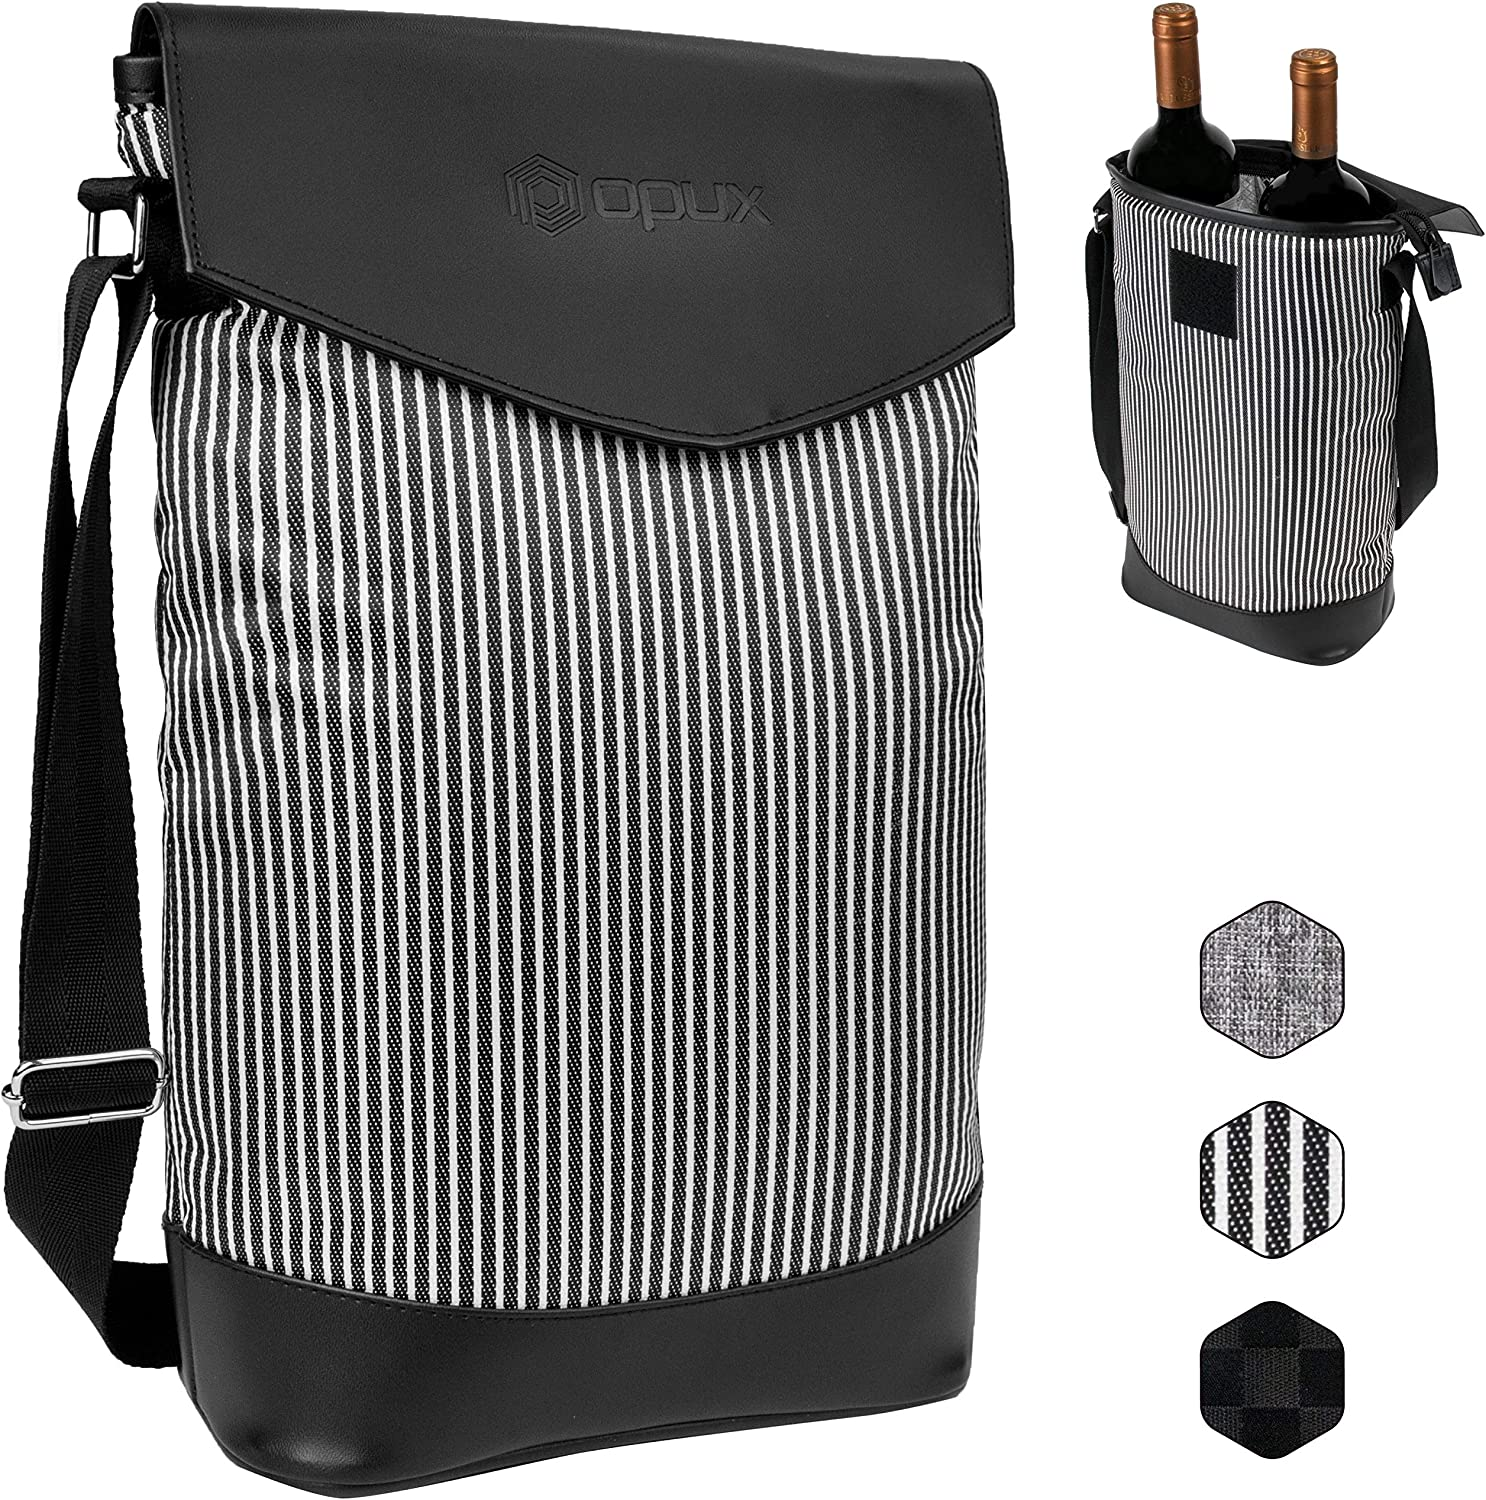 OPUX Insulated 2 Bottle Wine Carrier | Wine Tote Cooler Bag with Shoulder Strap, Padded Protection | Portable Wine Cooler Carrying Bag for Travel Picnic – Black/White Stripes